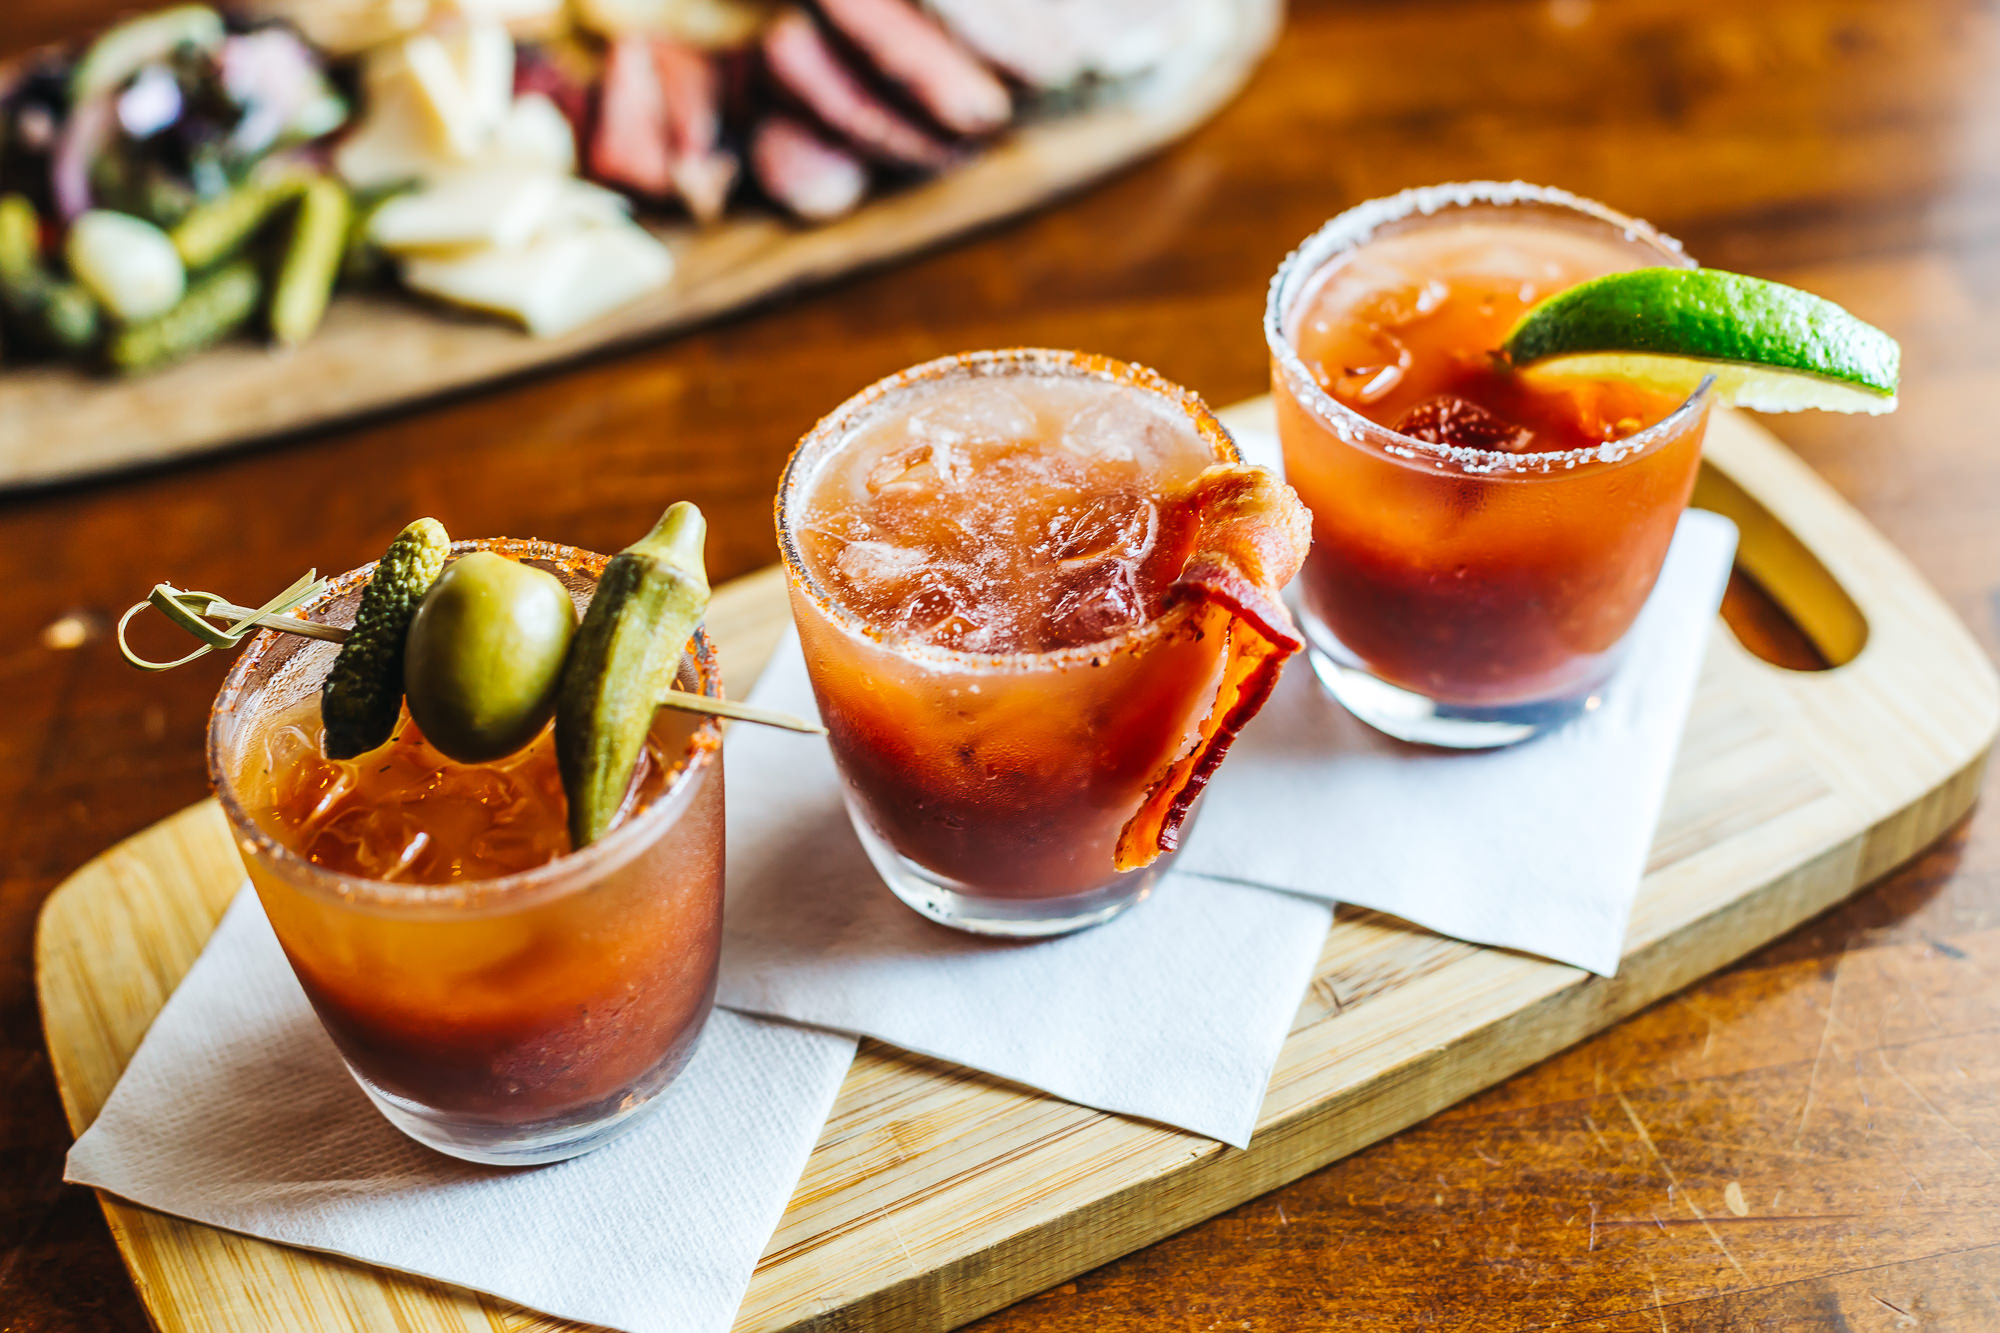 Tusk & Trotter's Bloody Mary flight - Pickle Mary, Bacon Mary and Tequila Lime